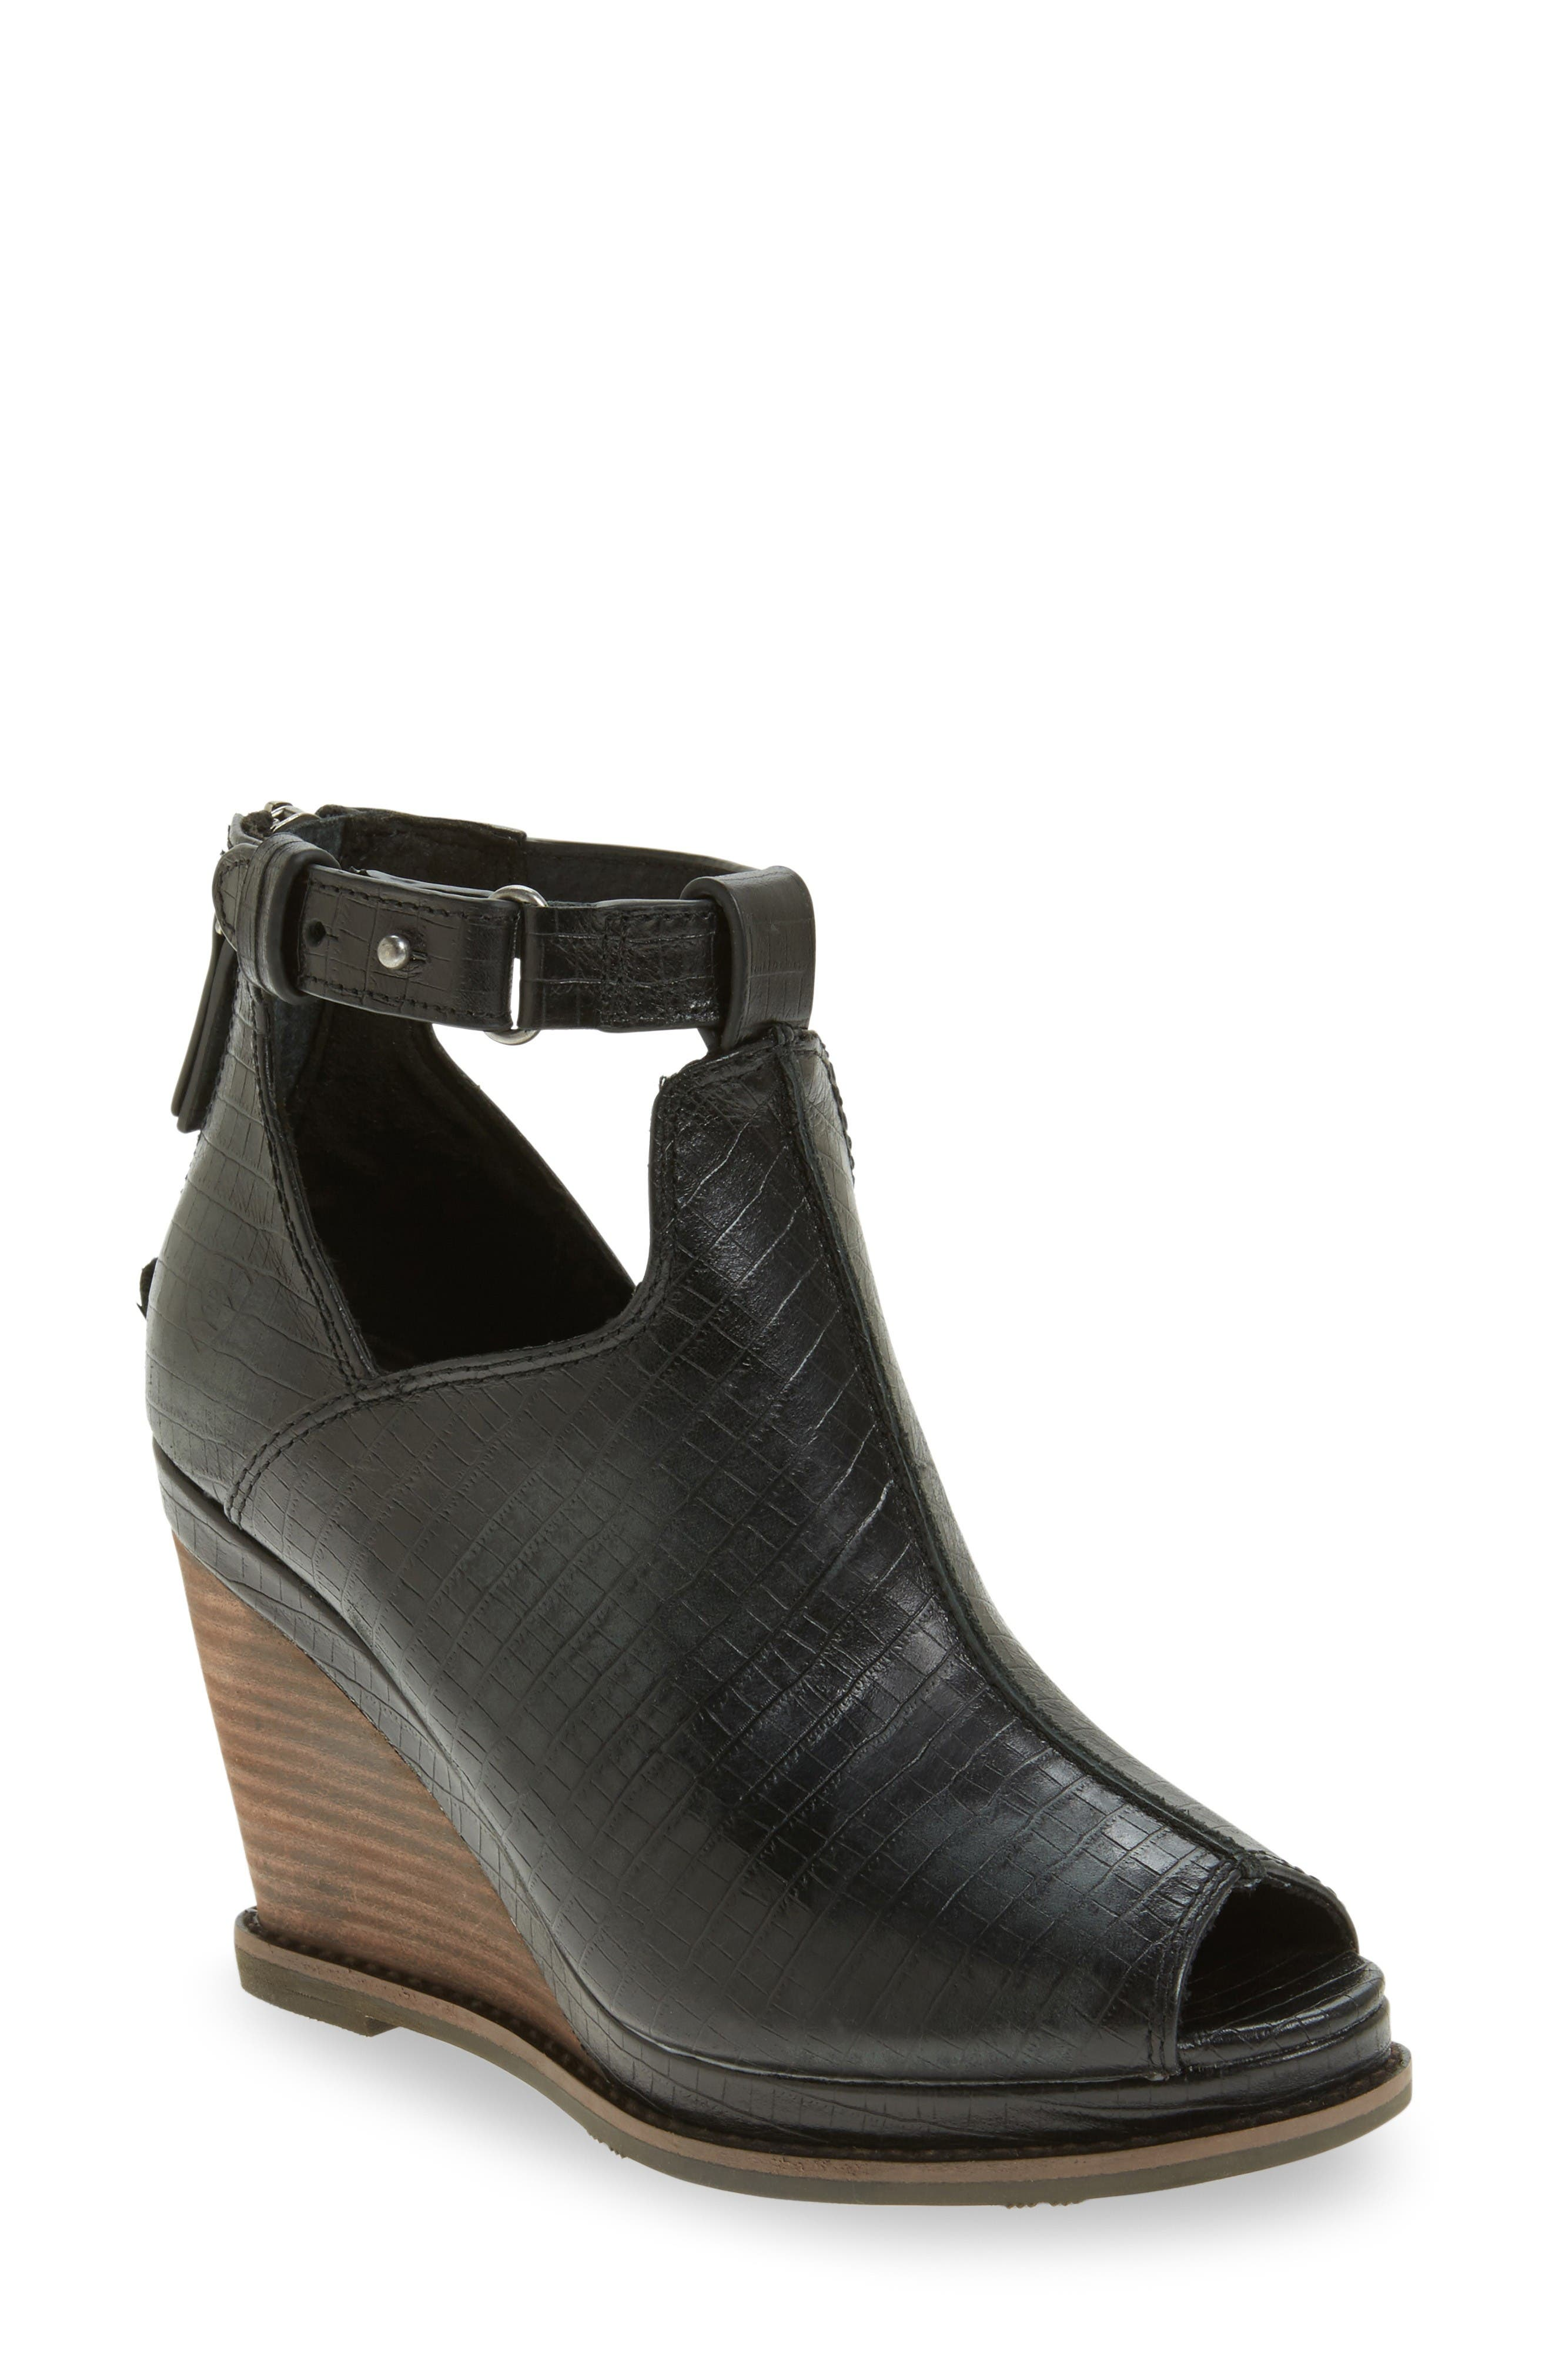 Alternate Image 1 Selected - Ariat Backstage Wedge Bootie (Women)